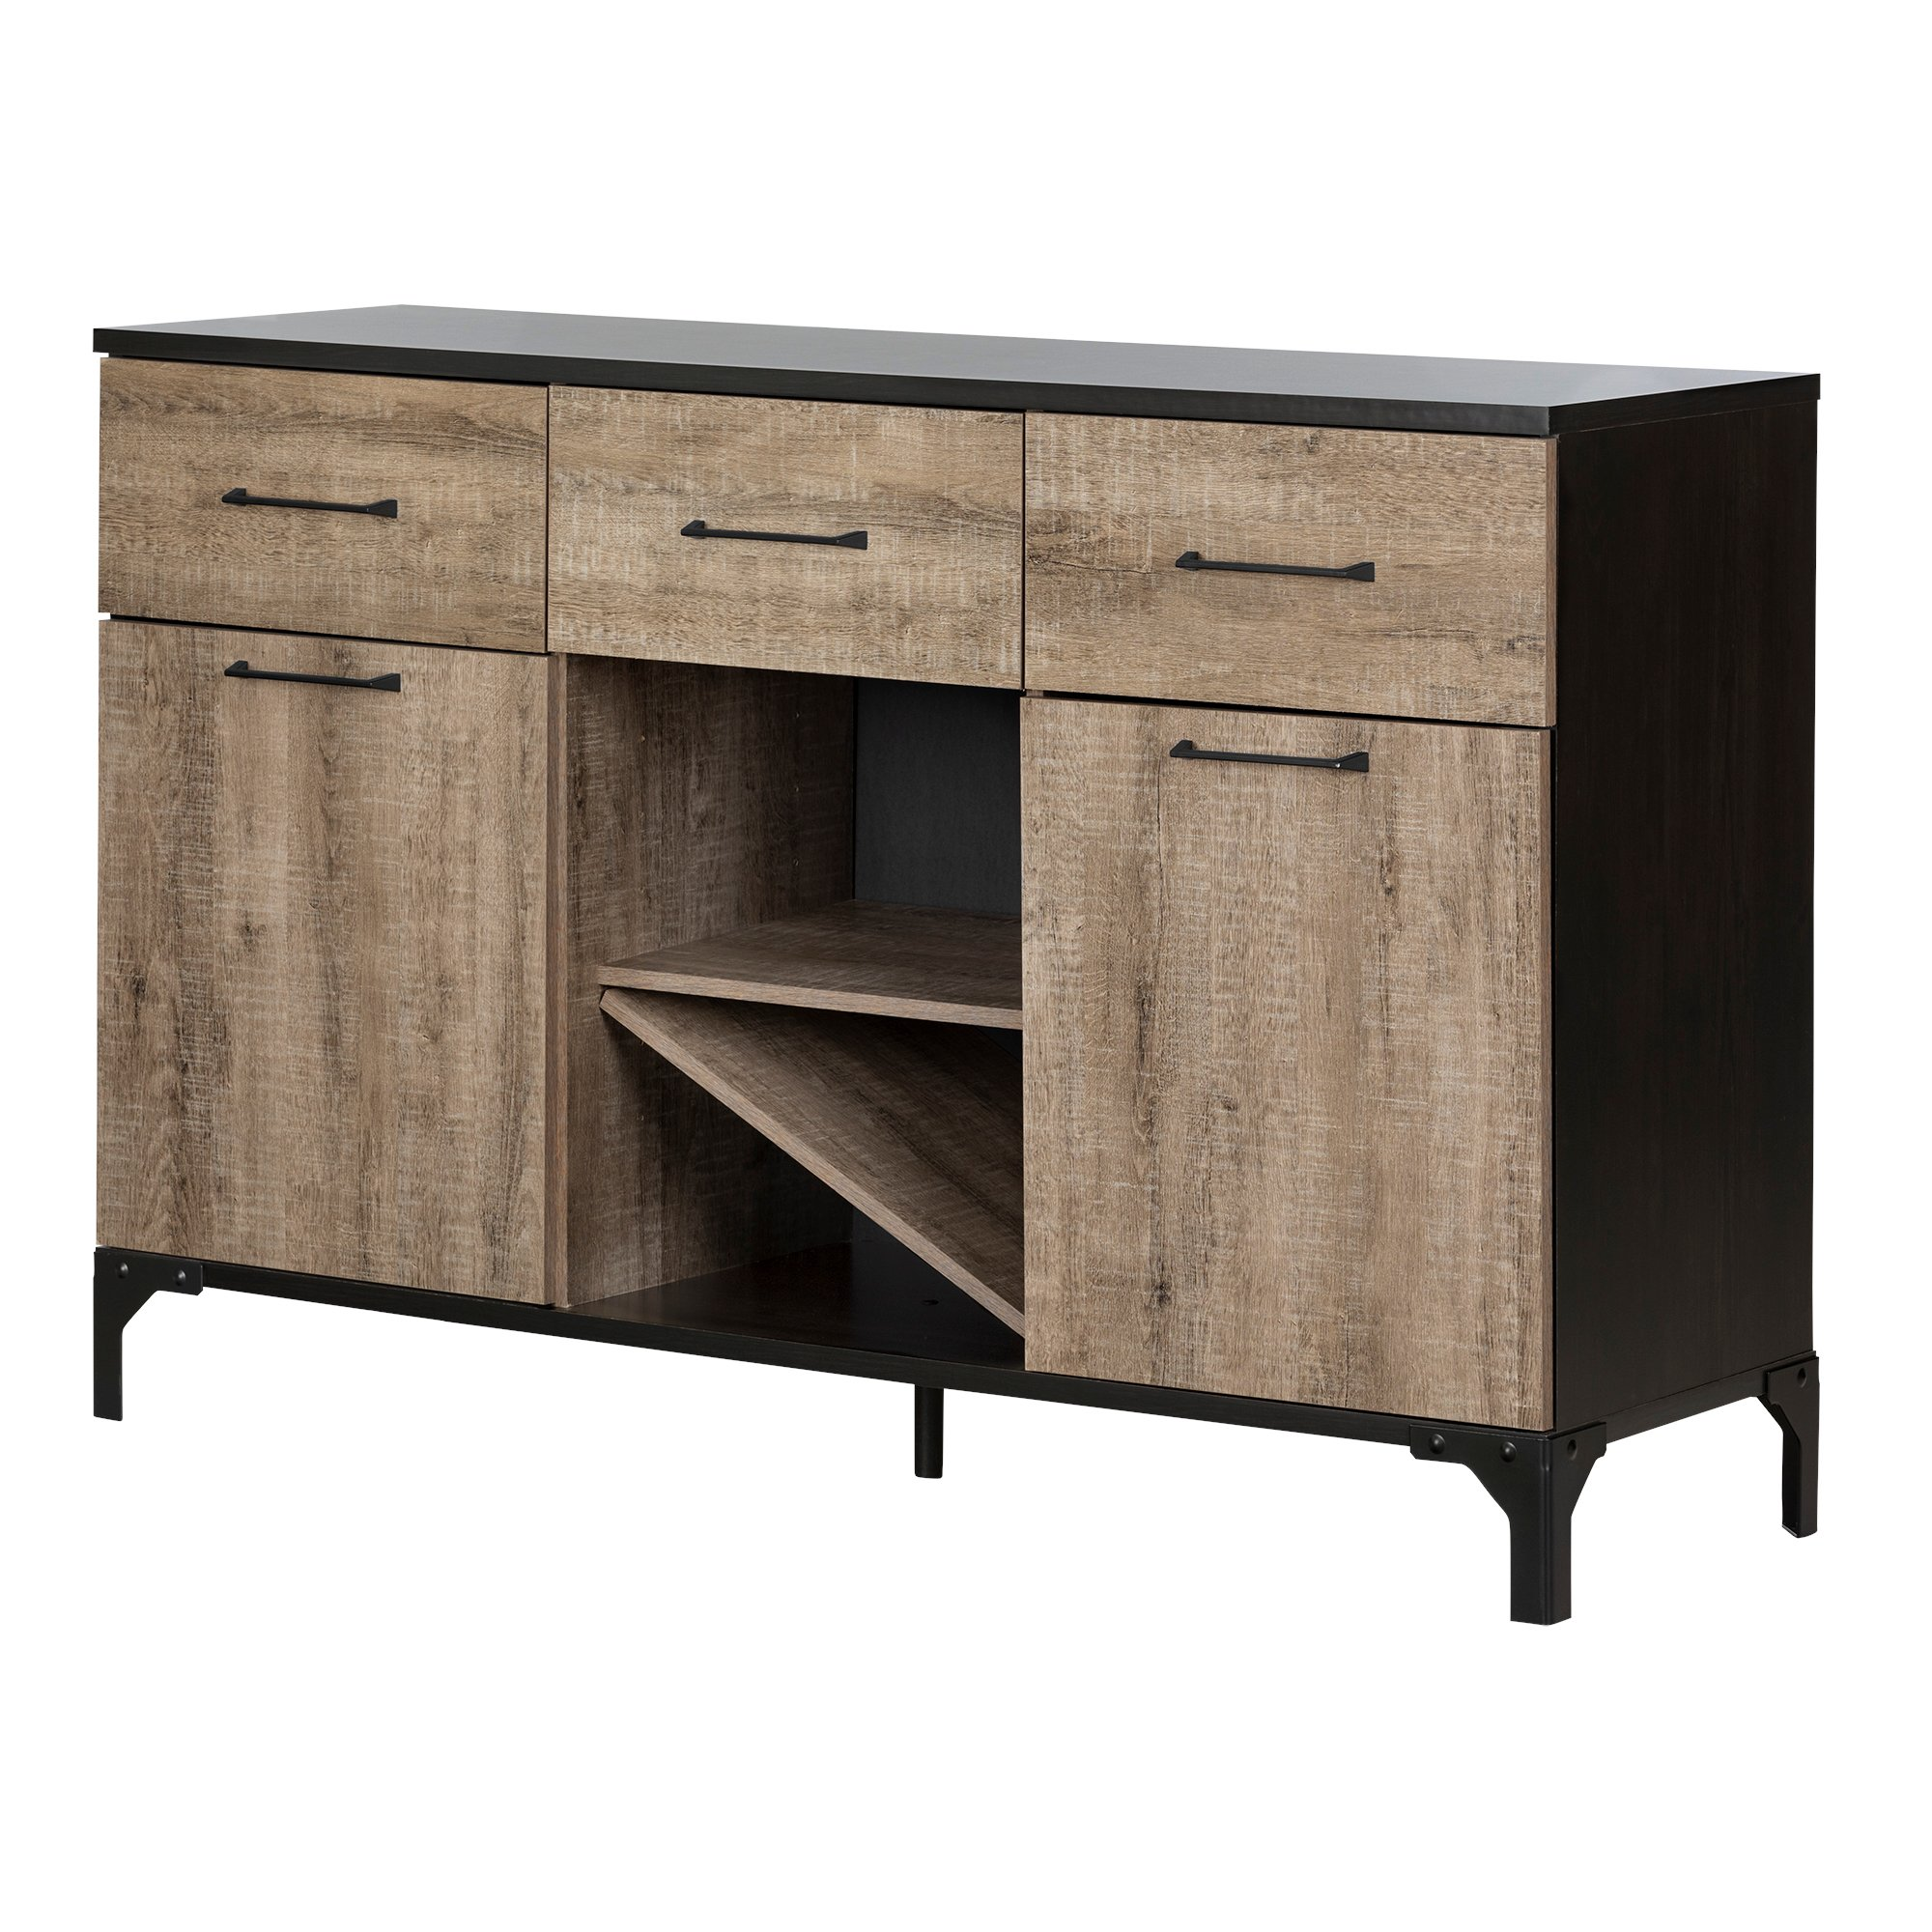 South Shore Valet Buffet with Wine Storage by South Shore